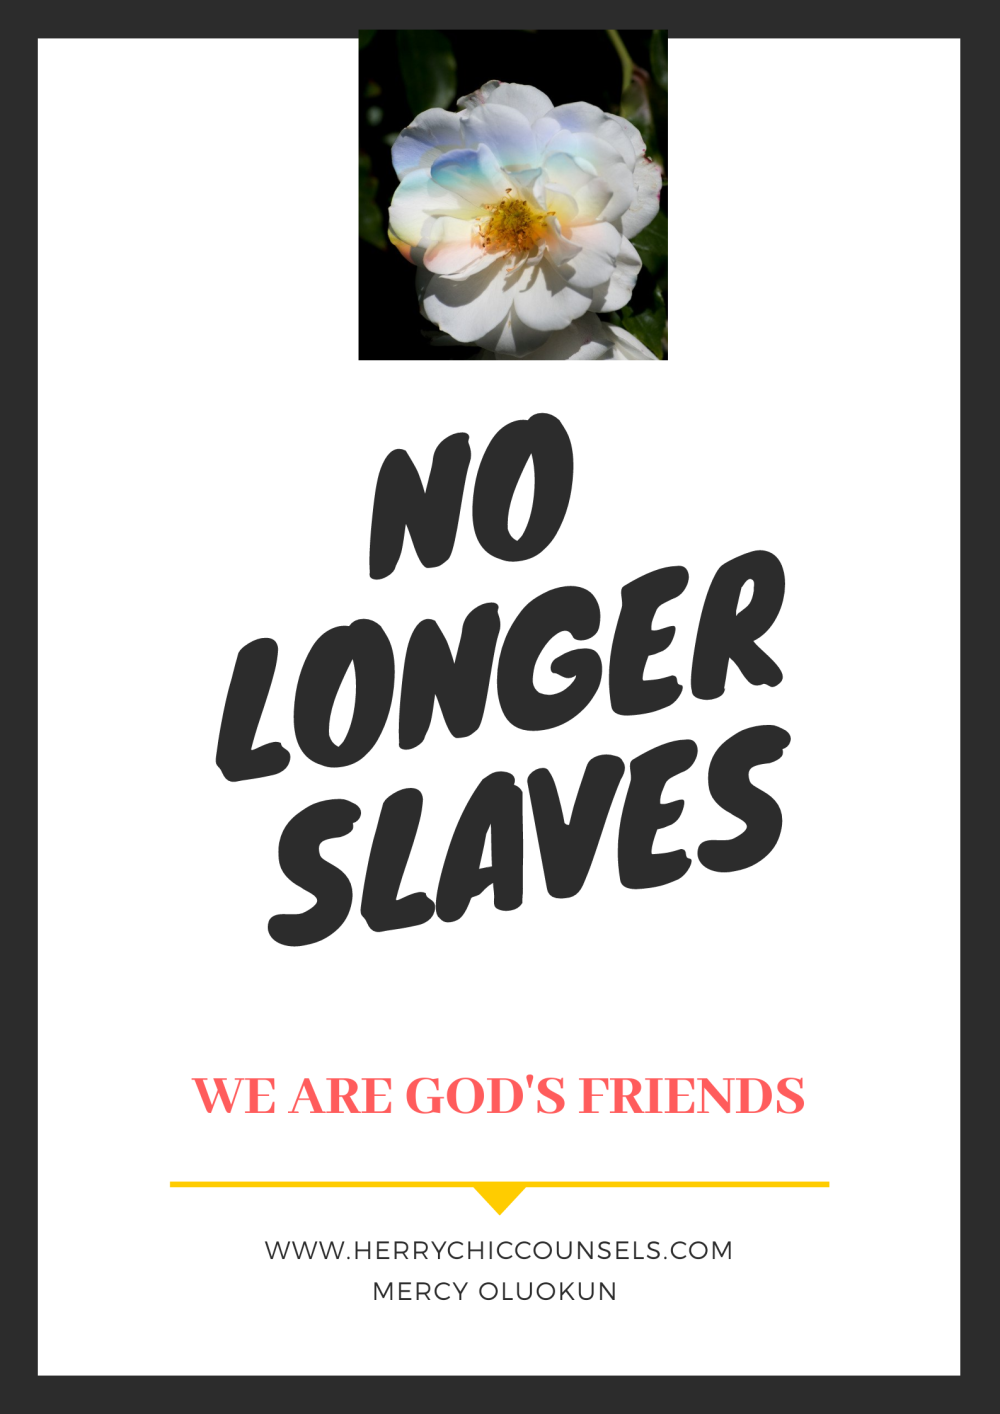 No longer slaves but now God's friend